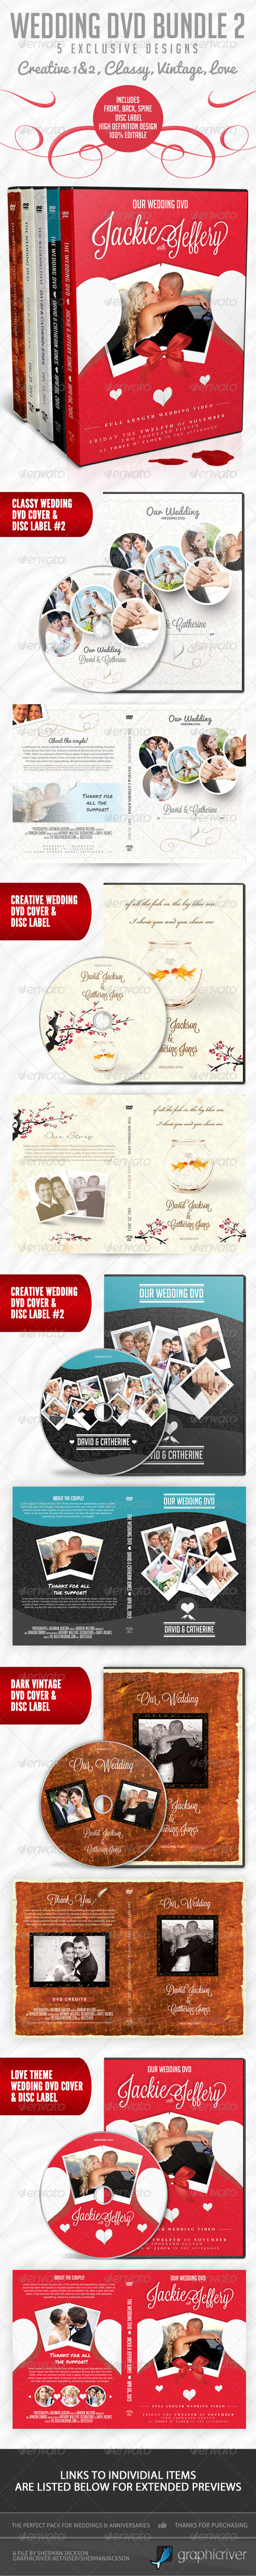 Wedding DVD Premium Bundle - 2 - CD & DVD artwork Print Templates